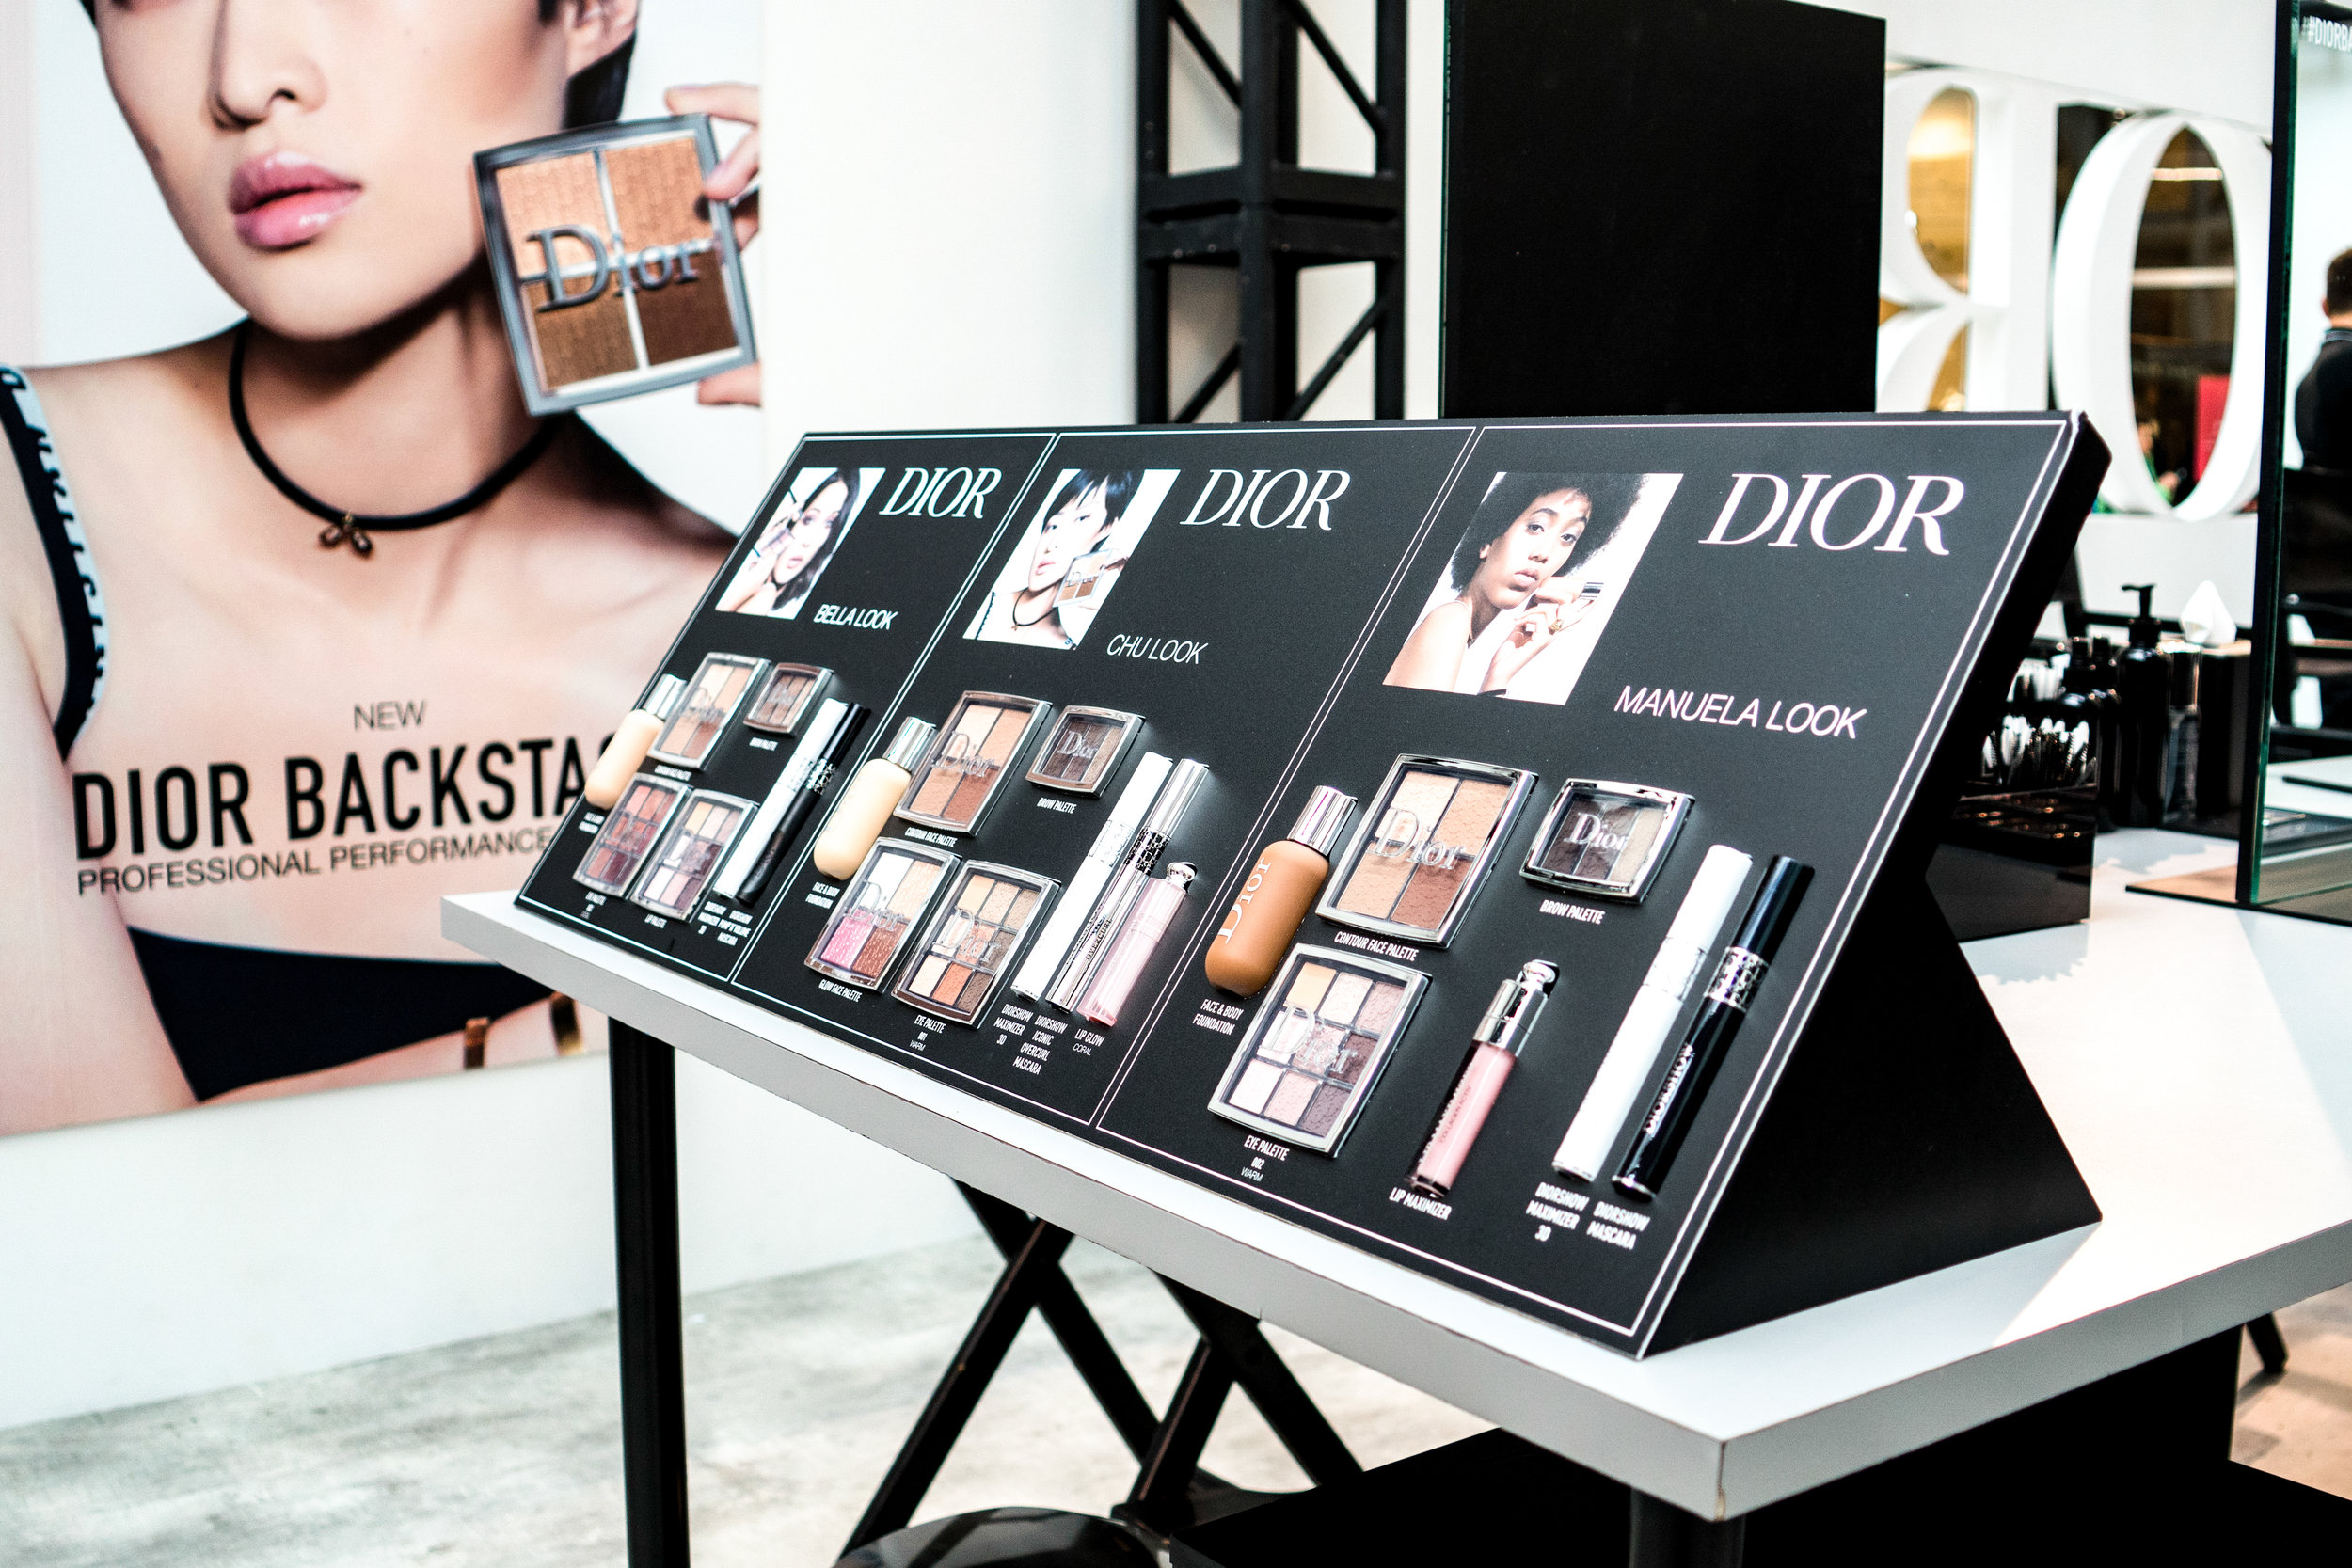 DIOR OCULUS_WEBSITE UPDATE-12.JPG